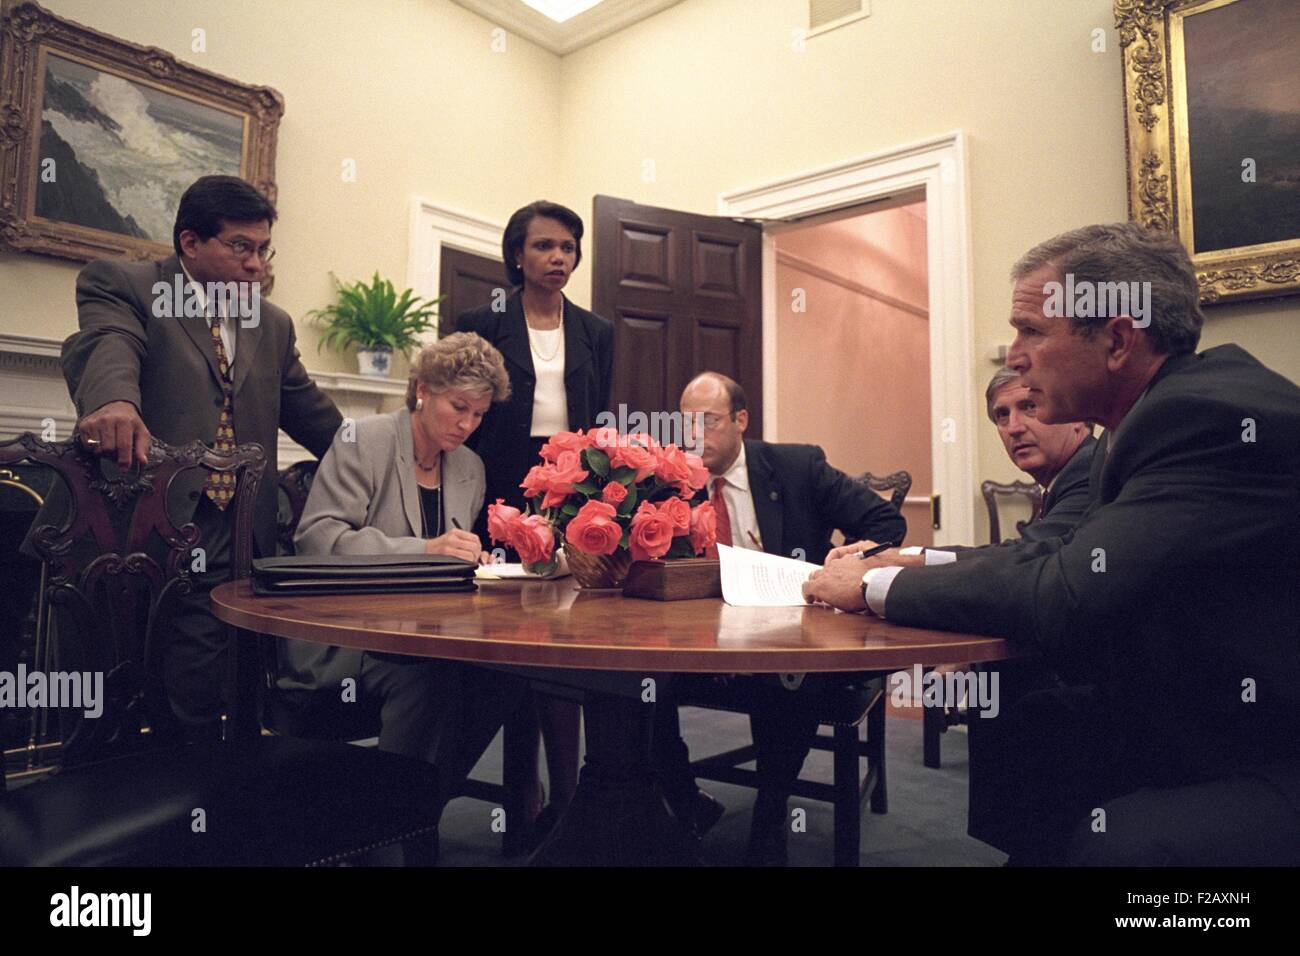 Oval Office meeting on the evening of Sept. 11, 2001, after 9-11 Terrorist Attacks. President George W. Bush is - Stock Image